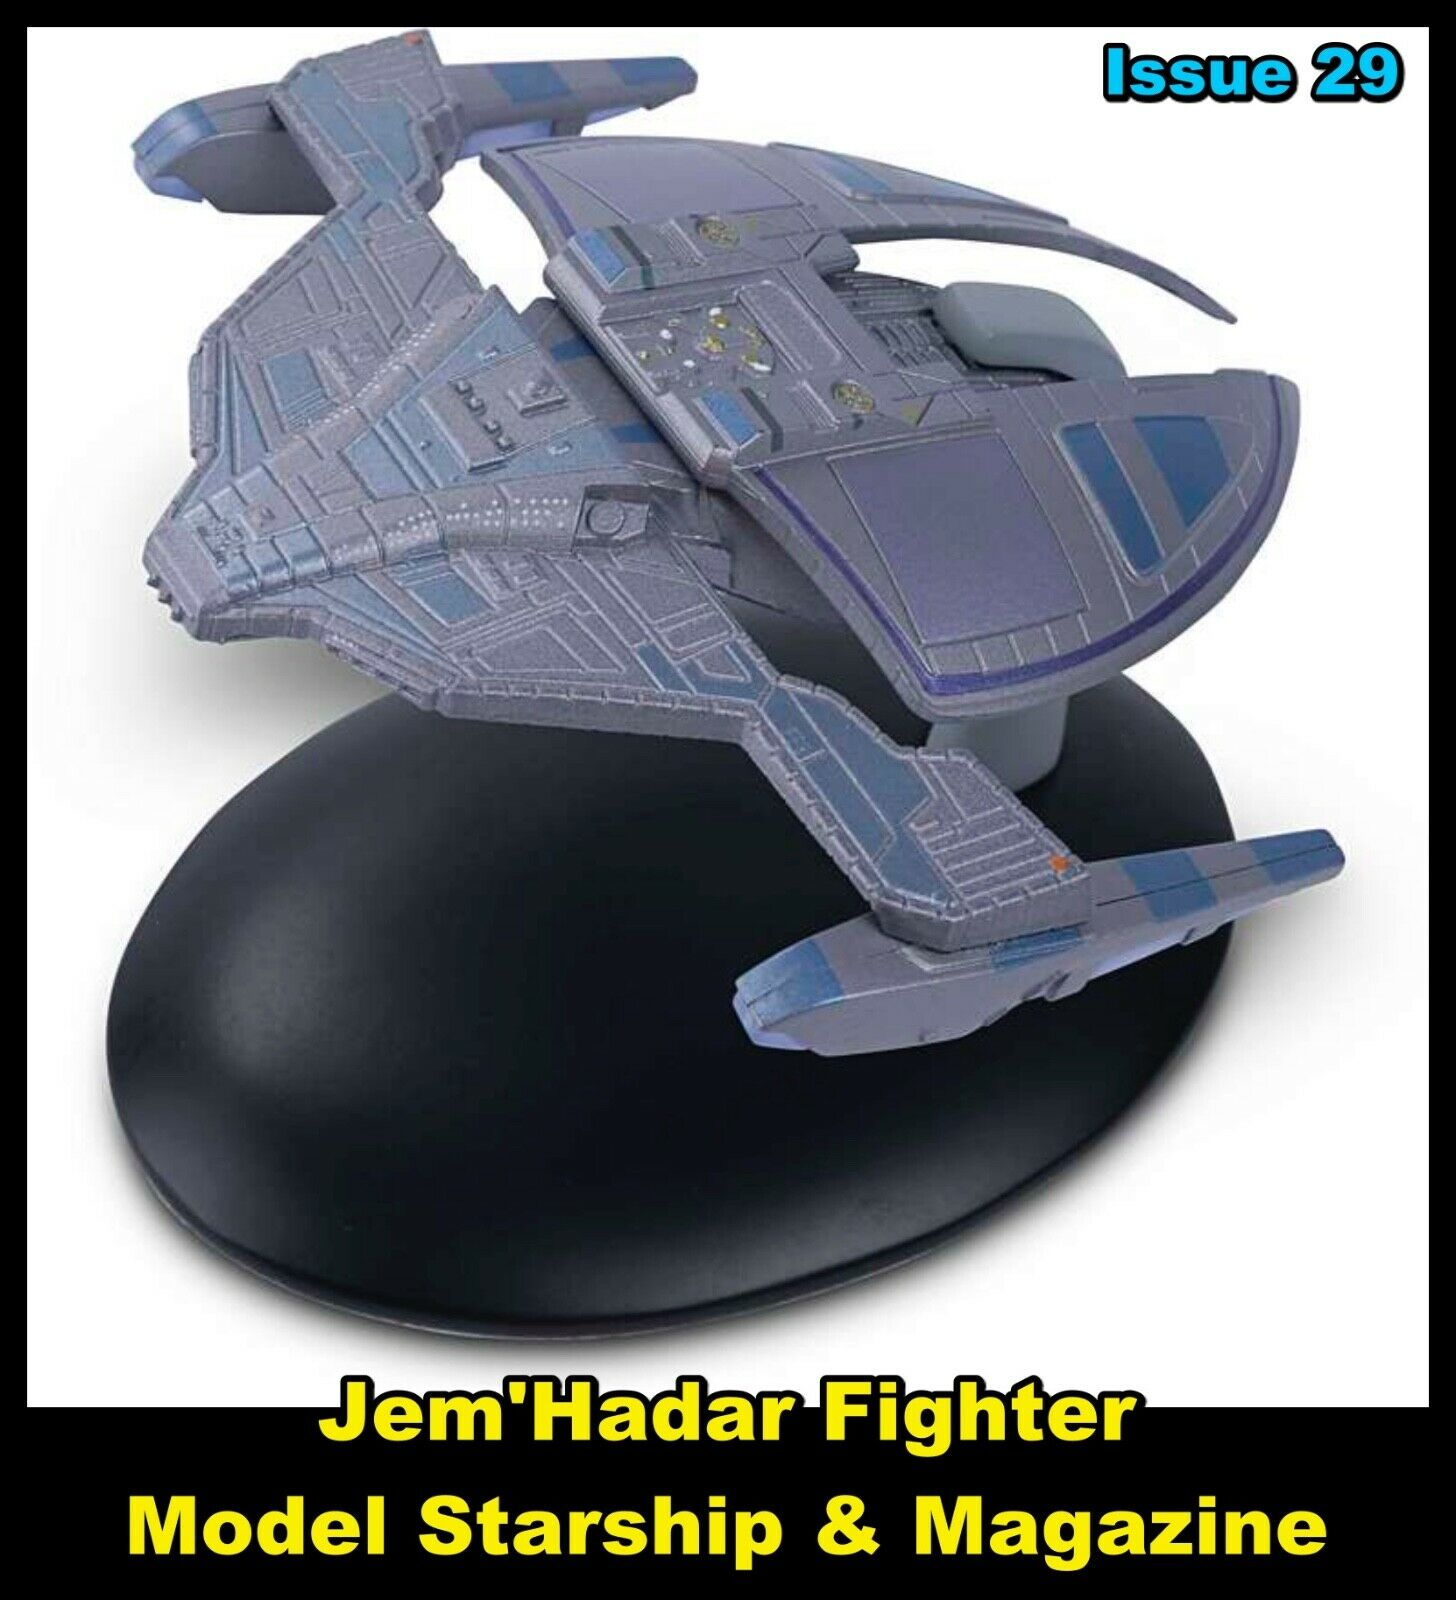 Issue 29: Jem'Hadar Fighter Starship Model